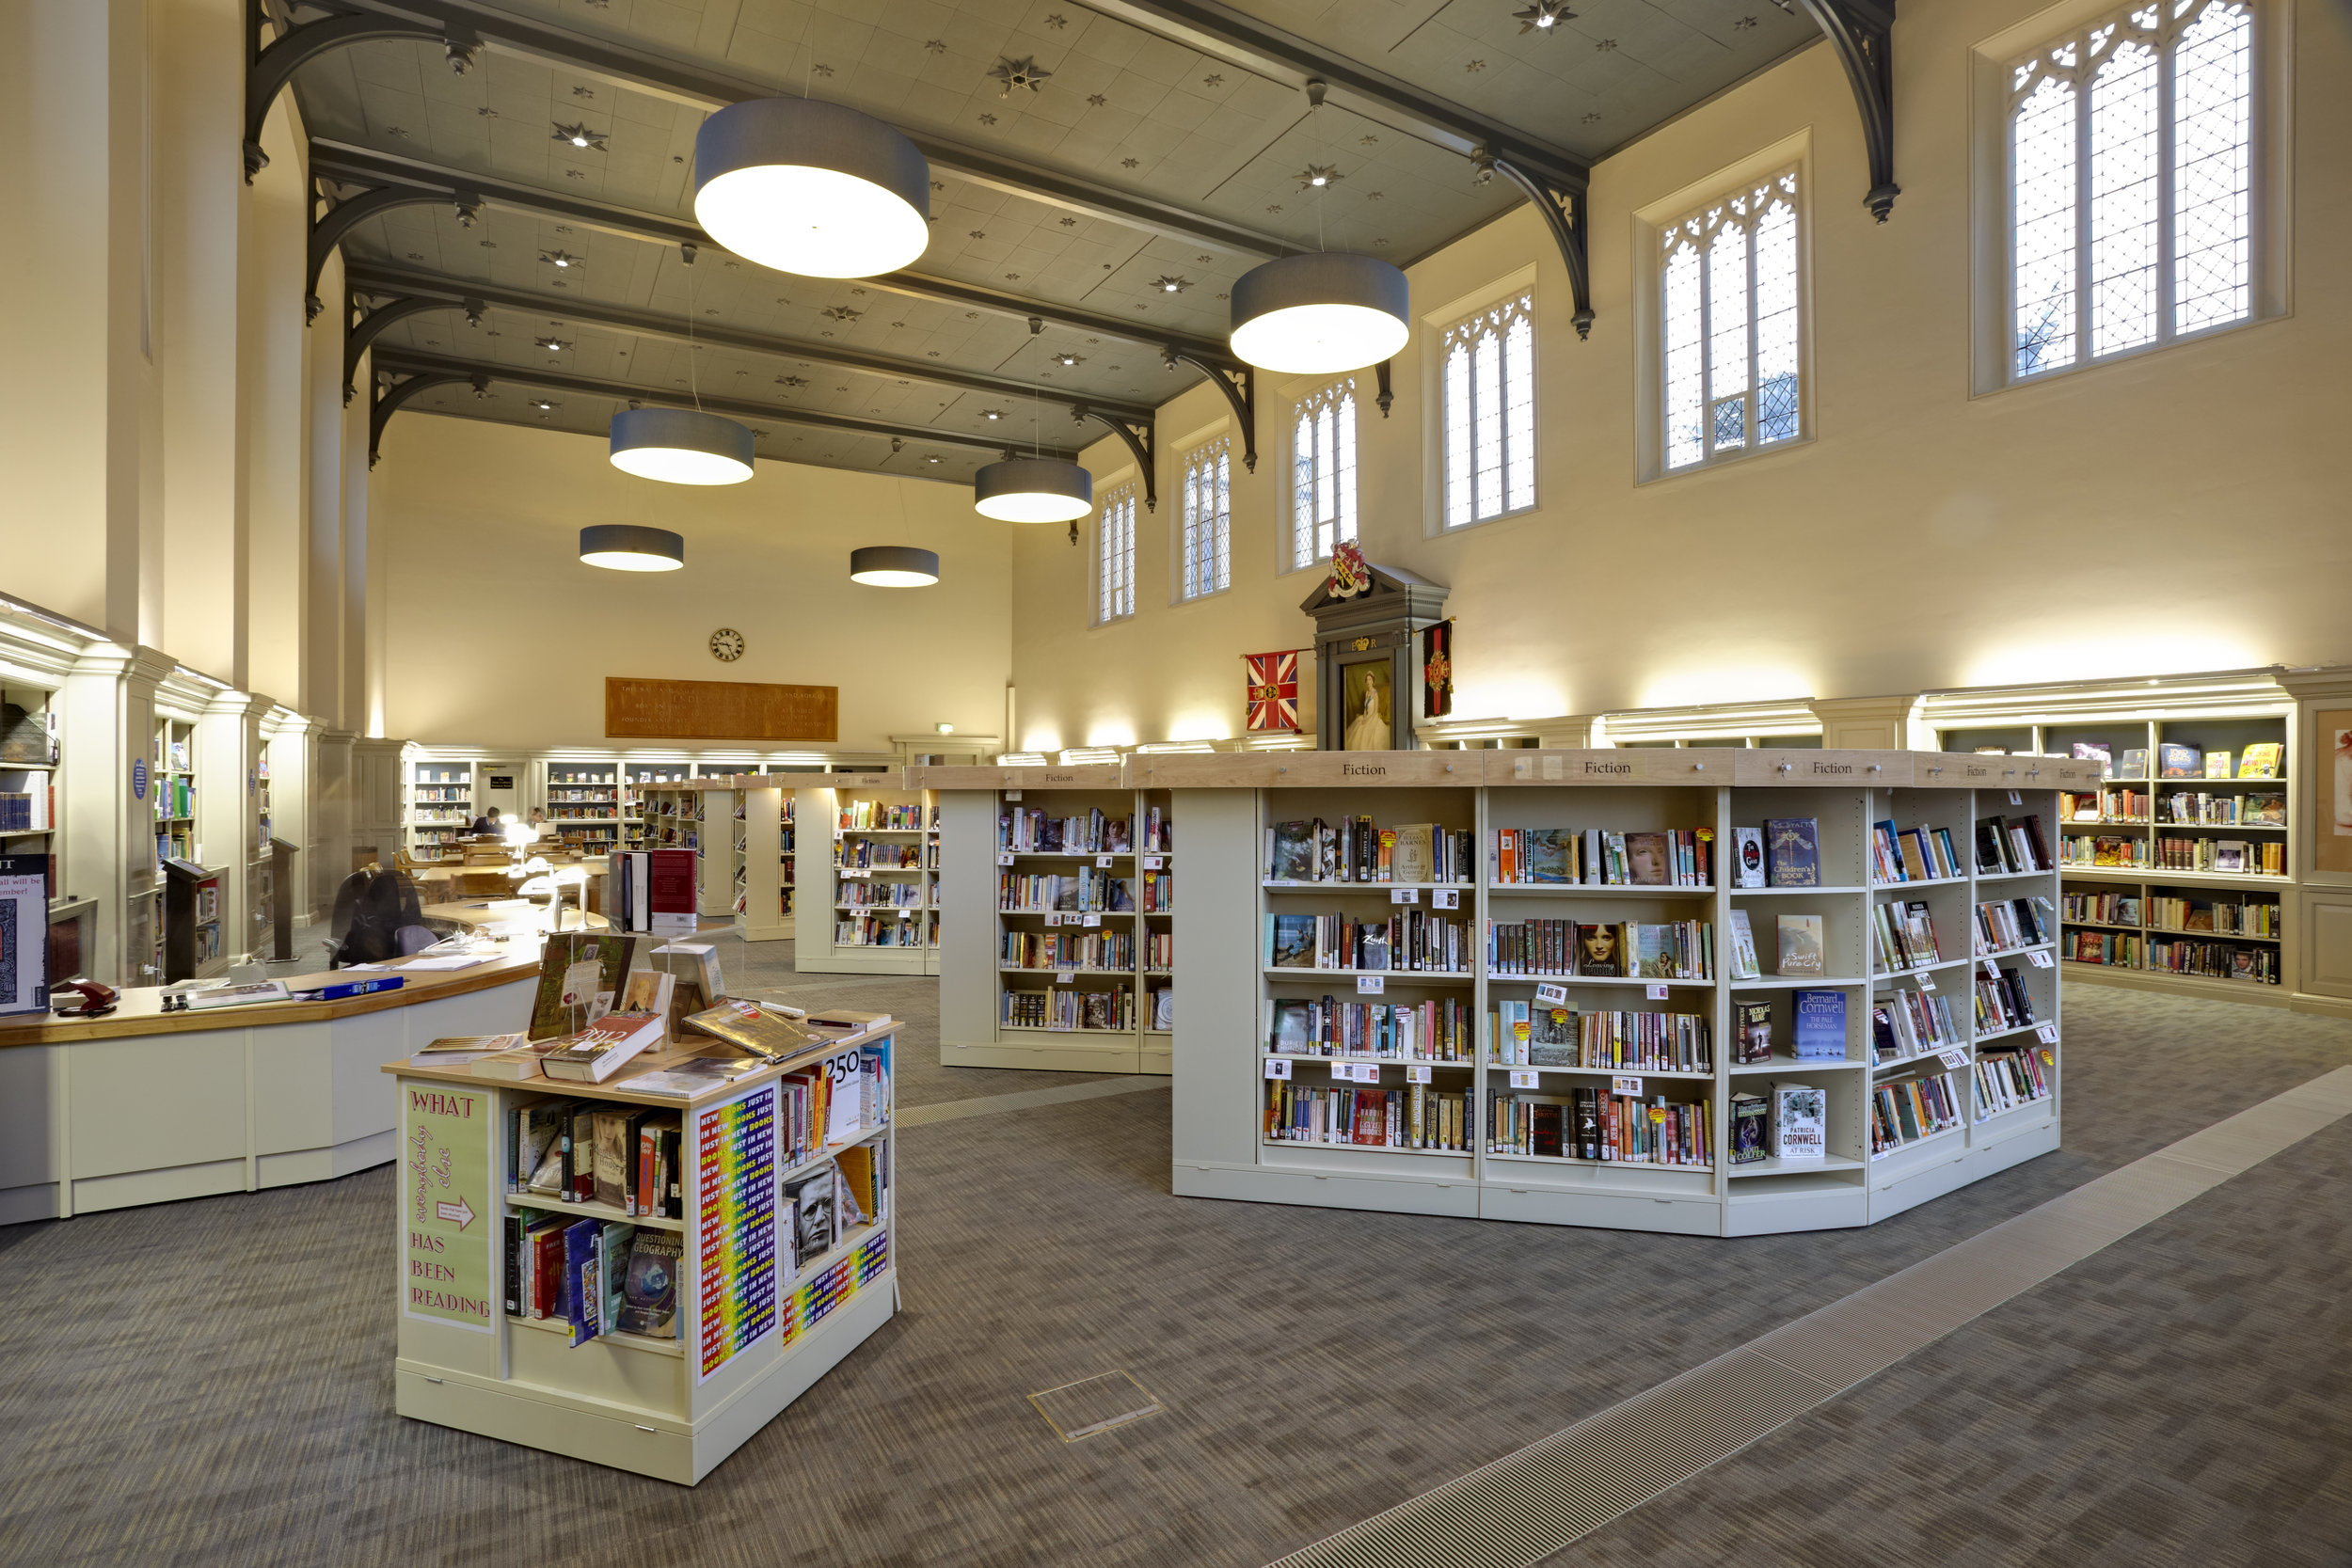 College library with bookshelves and large pendant lights.